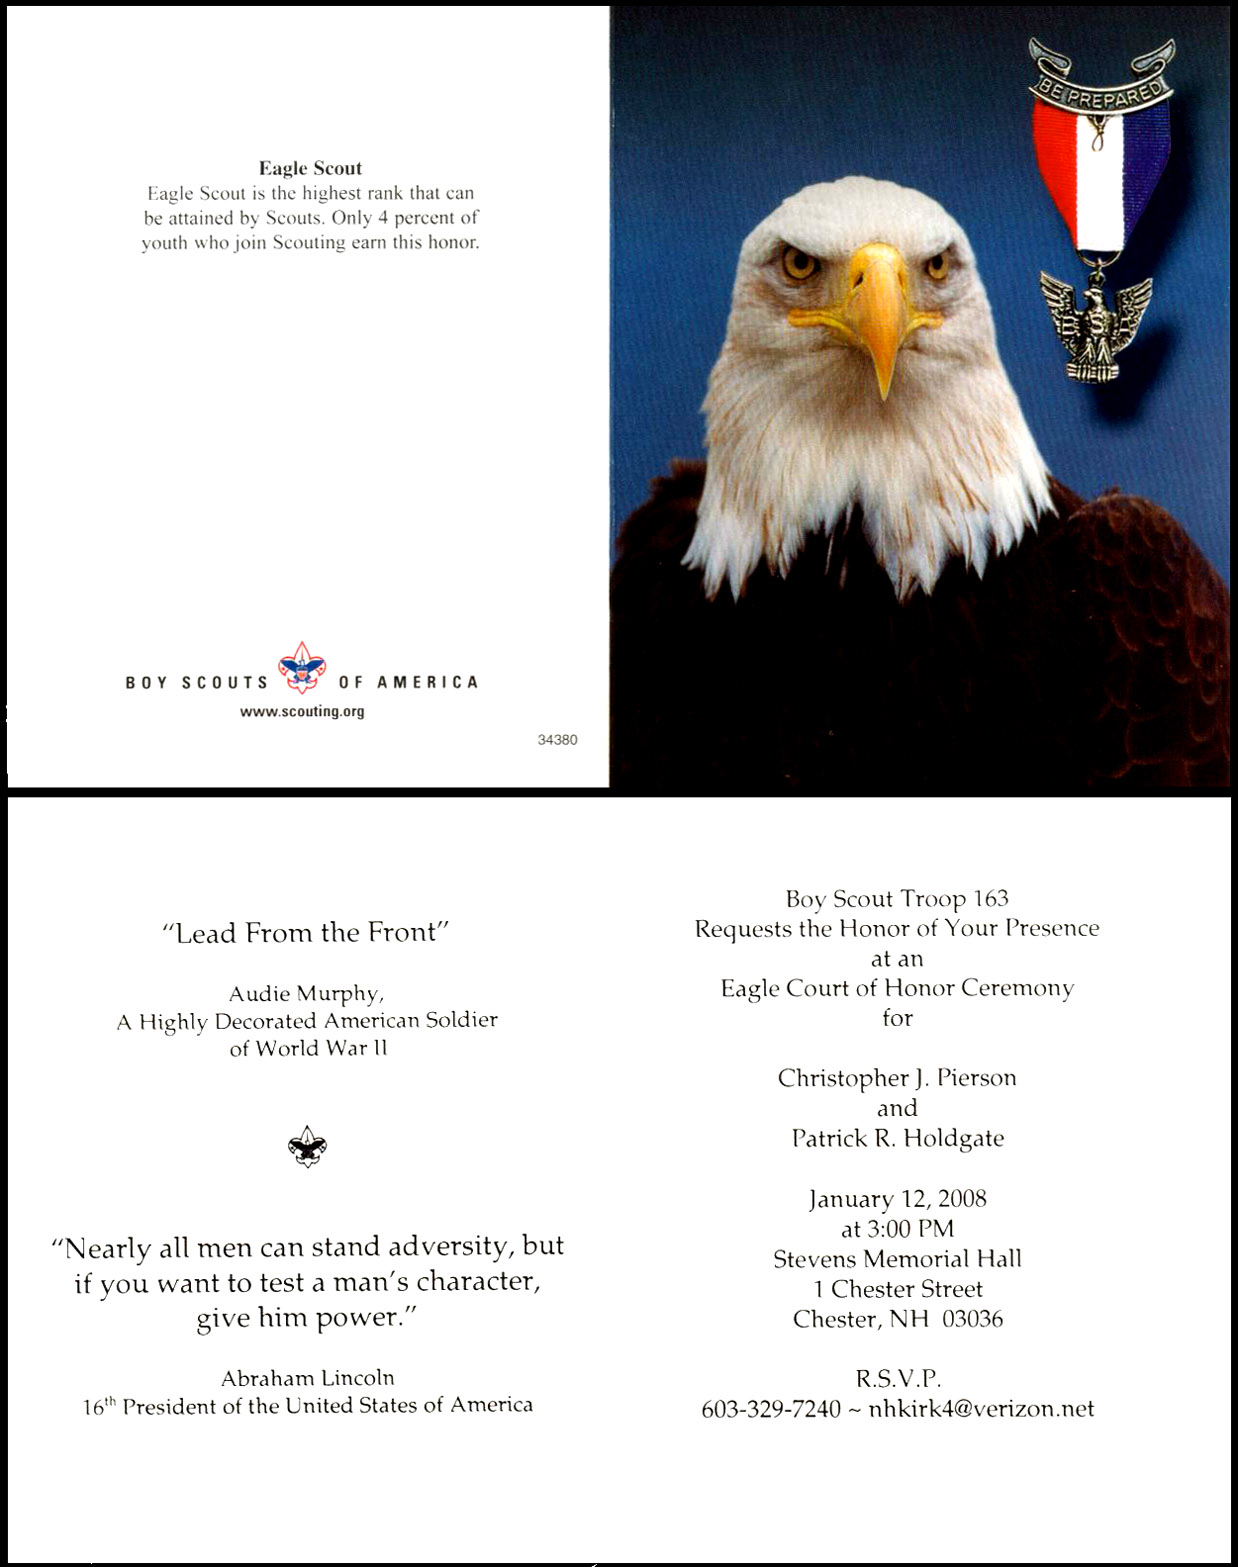 Boy Scout Eagle Invitations http://www.holdgate.us/SandownCannon/done.htm